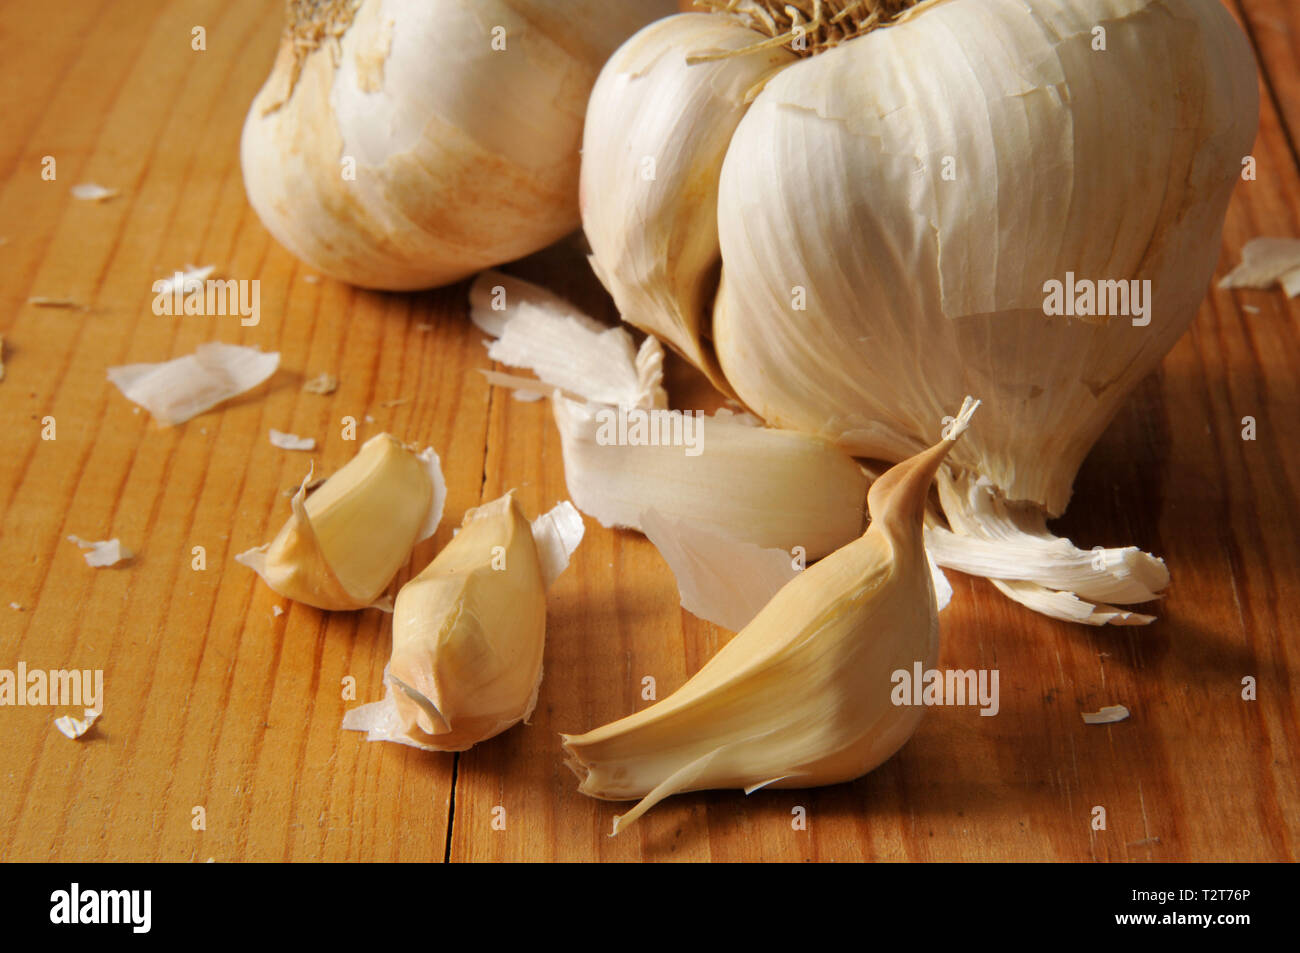 Fresh organic garlic cloves and bulbs on a wooden background - Stock Image